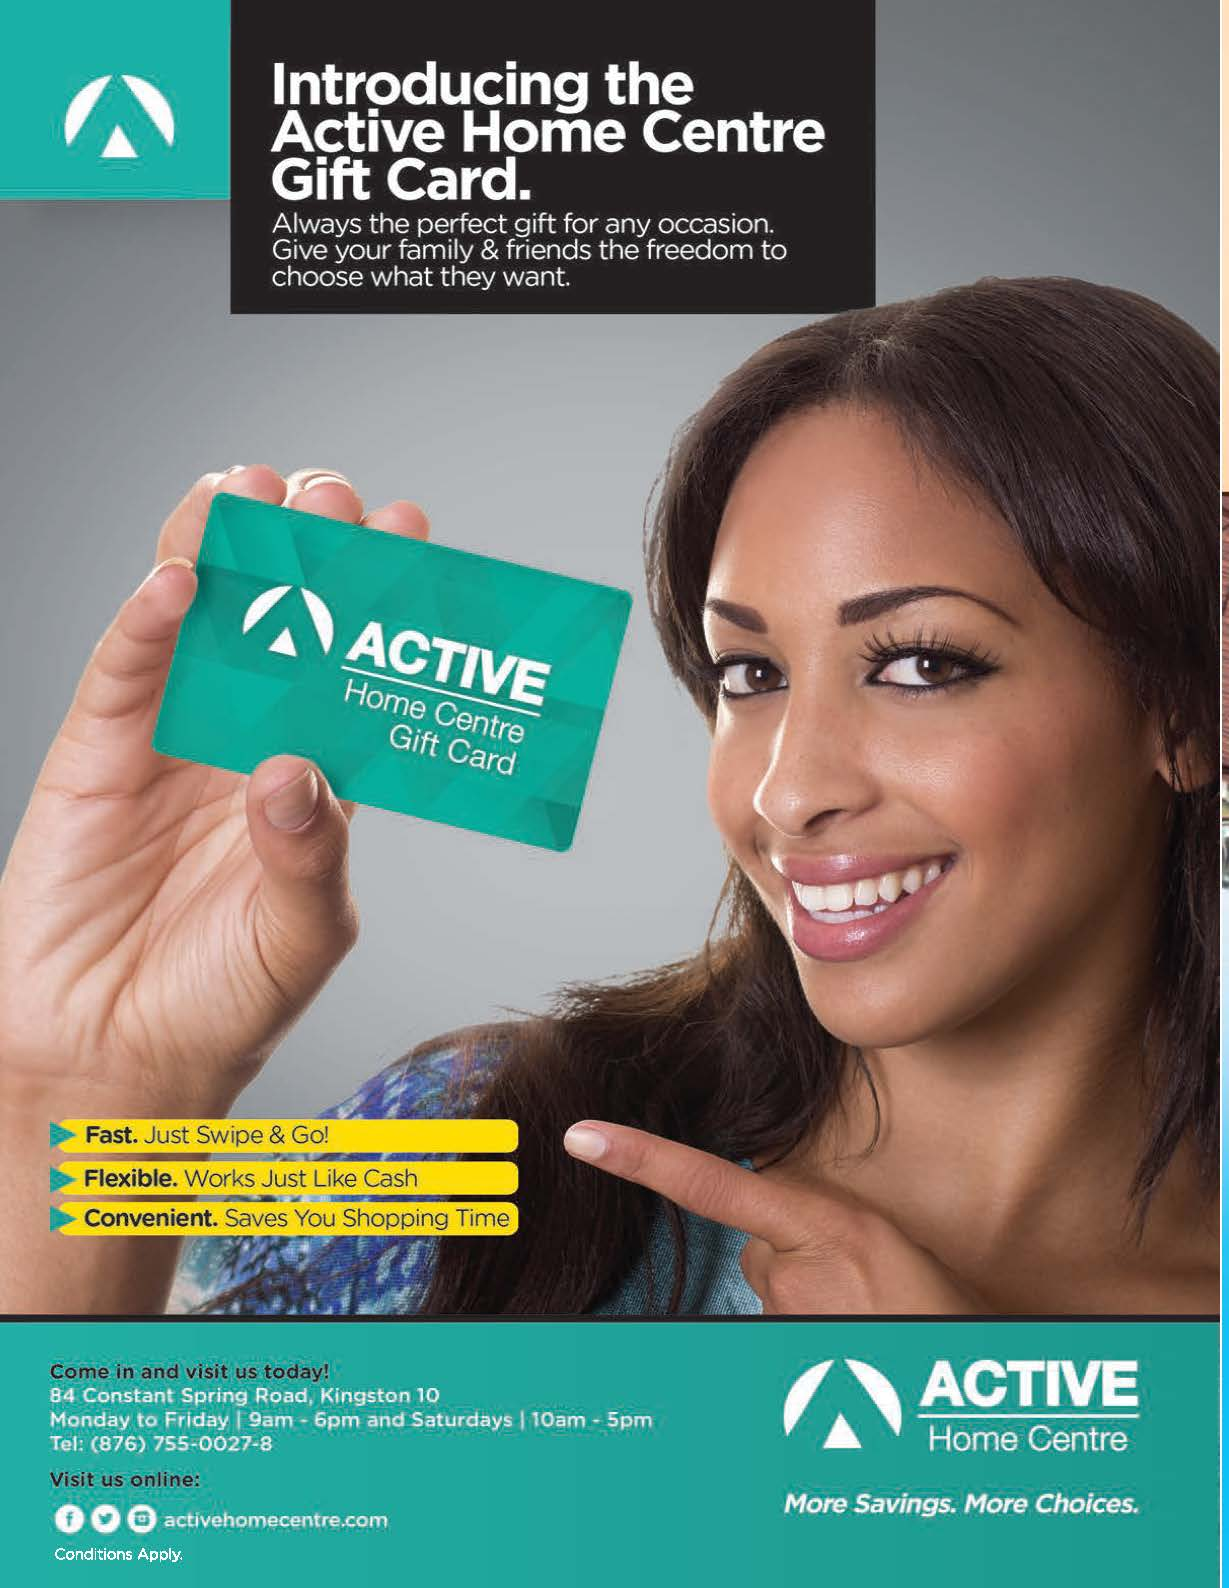 gift-card-ad-2014-introduction.jpg